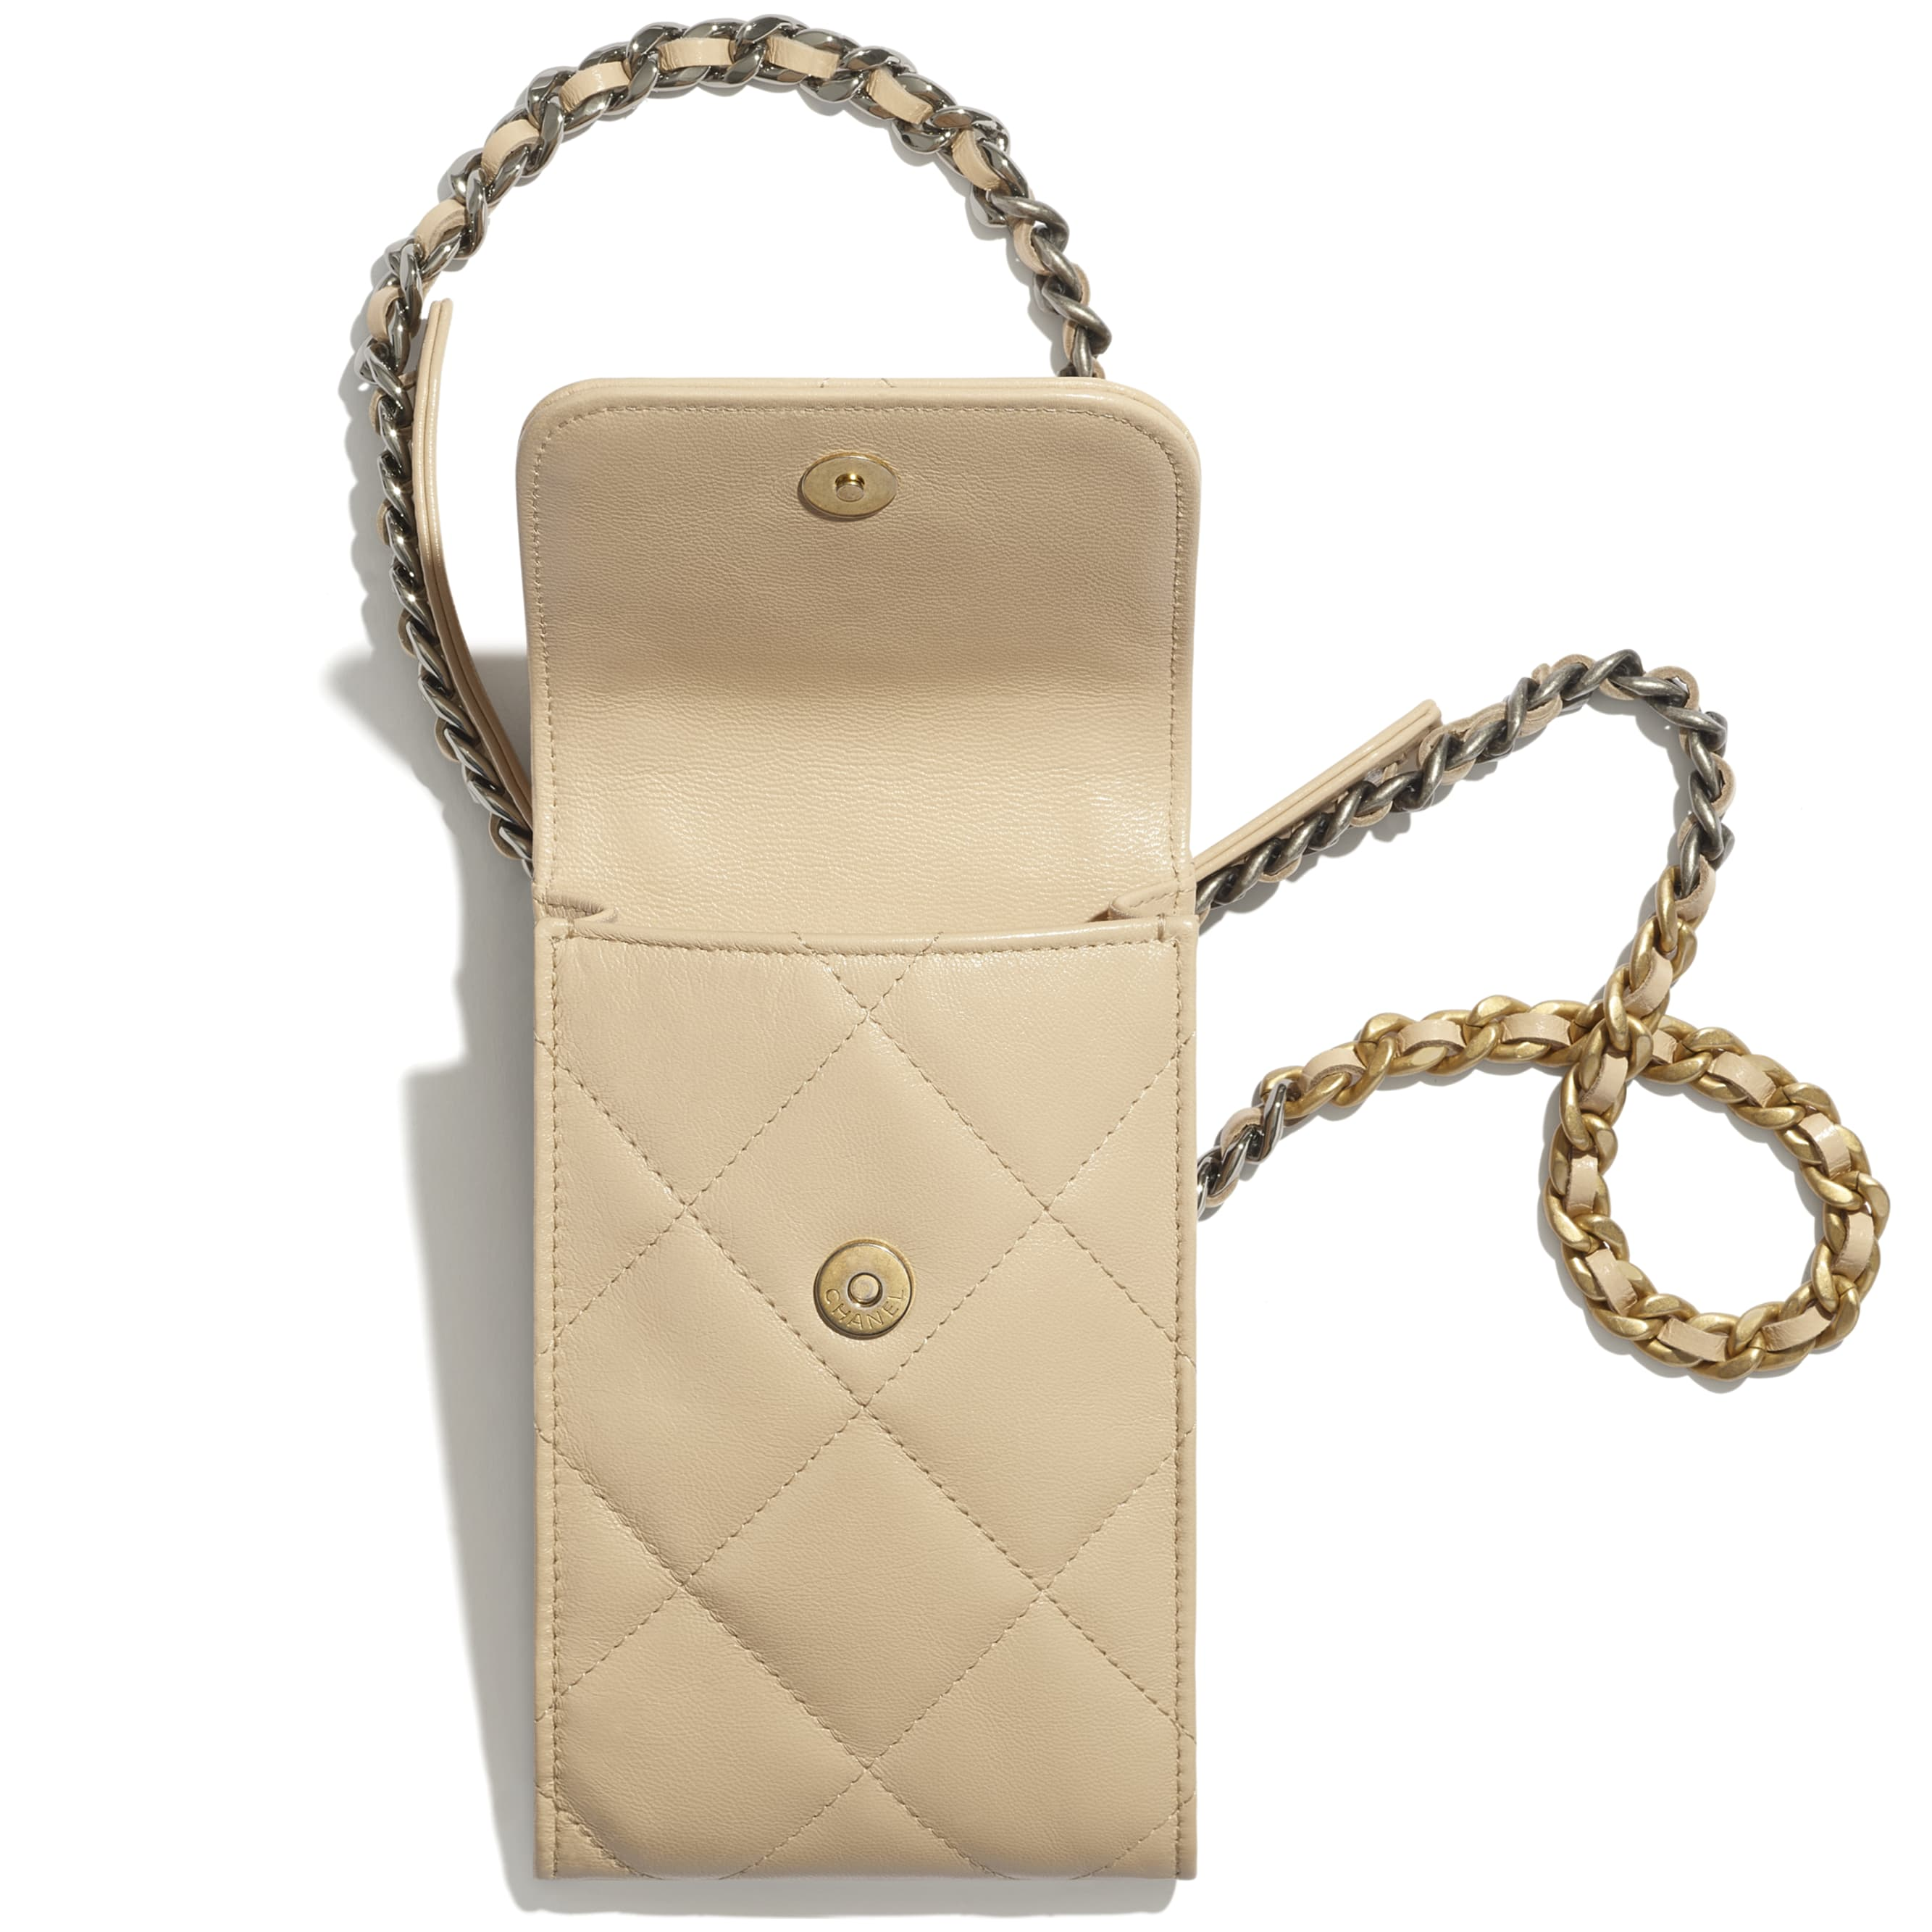 CHANEL 19 Phone Holder with Chain - Beige - Shiny Goatskin, Gold-Tone, Silver-Tone & Ruthenium-Finish Metal - CHANEL - Alternative view - see standard sized version